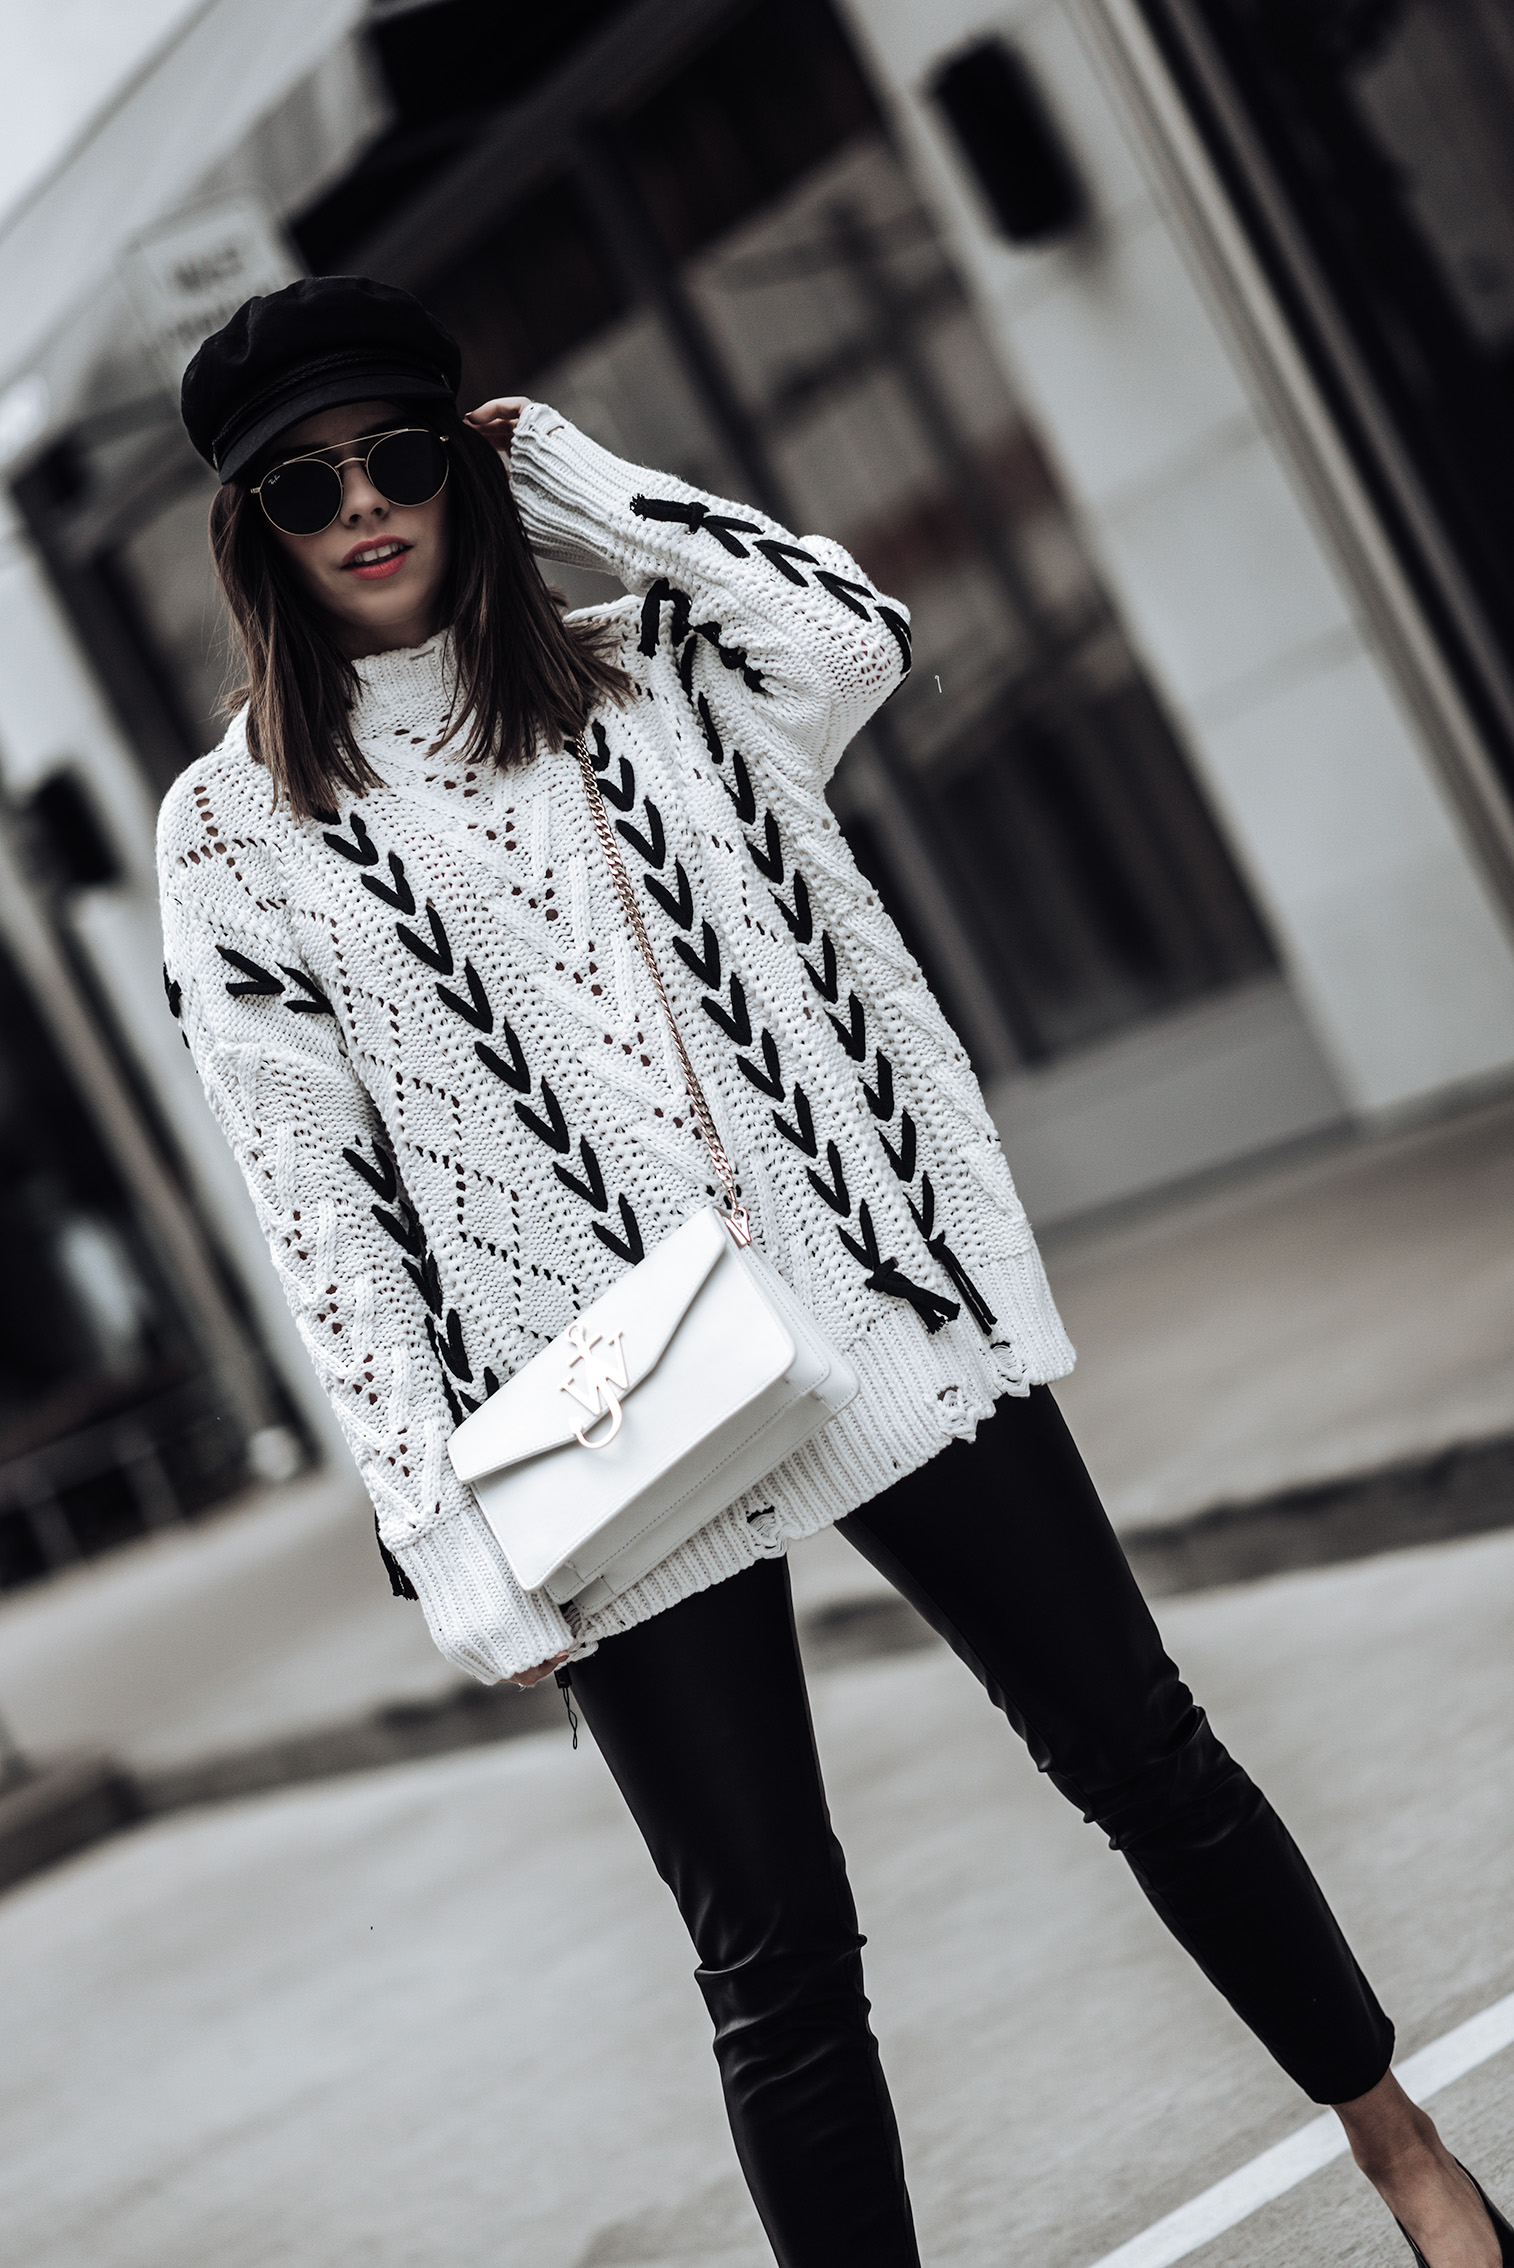 Lace up leisure open knit sweater {C/O} Chicwish | The principle mid rise vegan leather skinny pant | J.W. Anderson logo bag | Slingback heels | Fiddler cap | Ray-Ban 51 mm Sunglasses